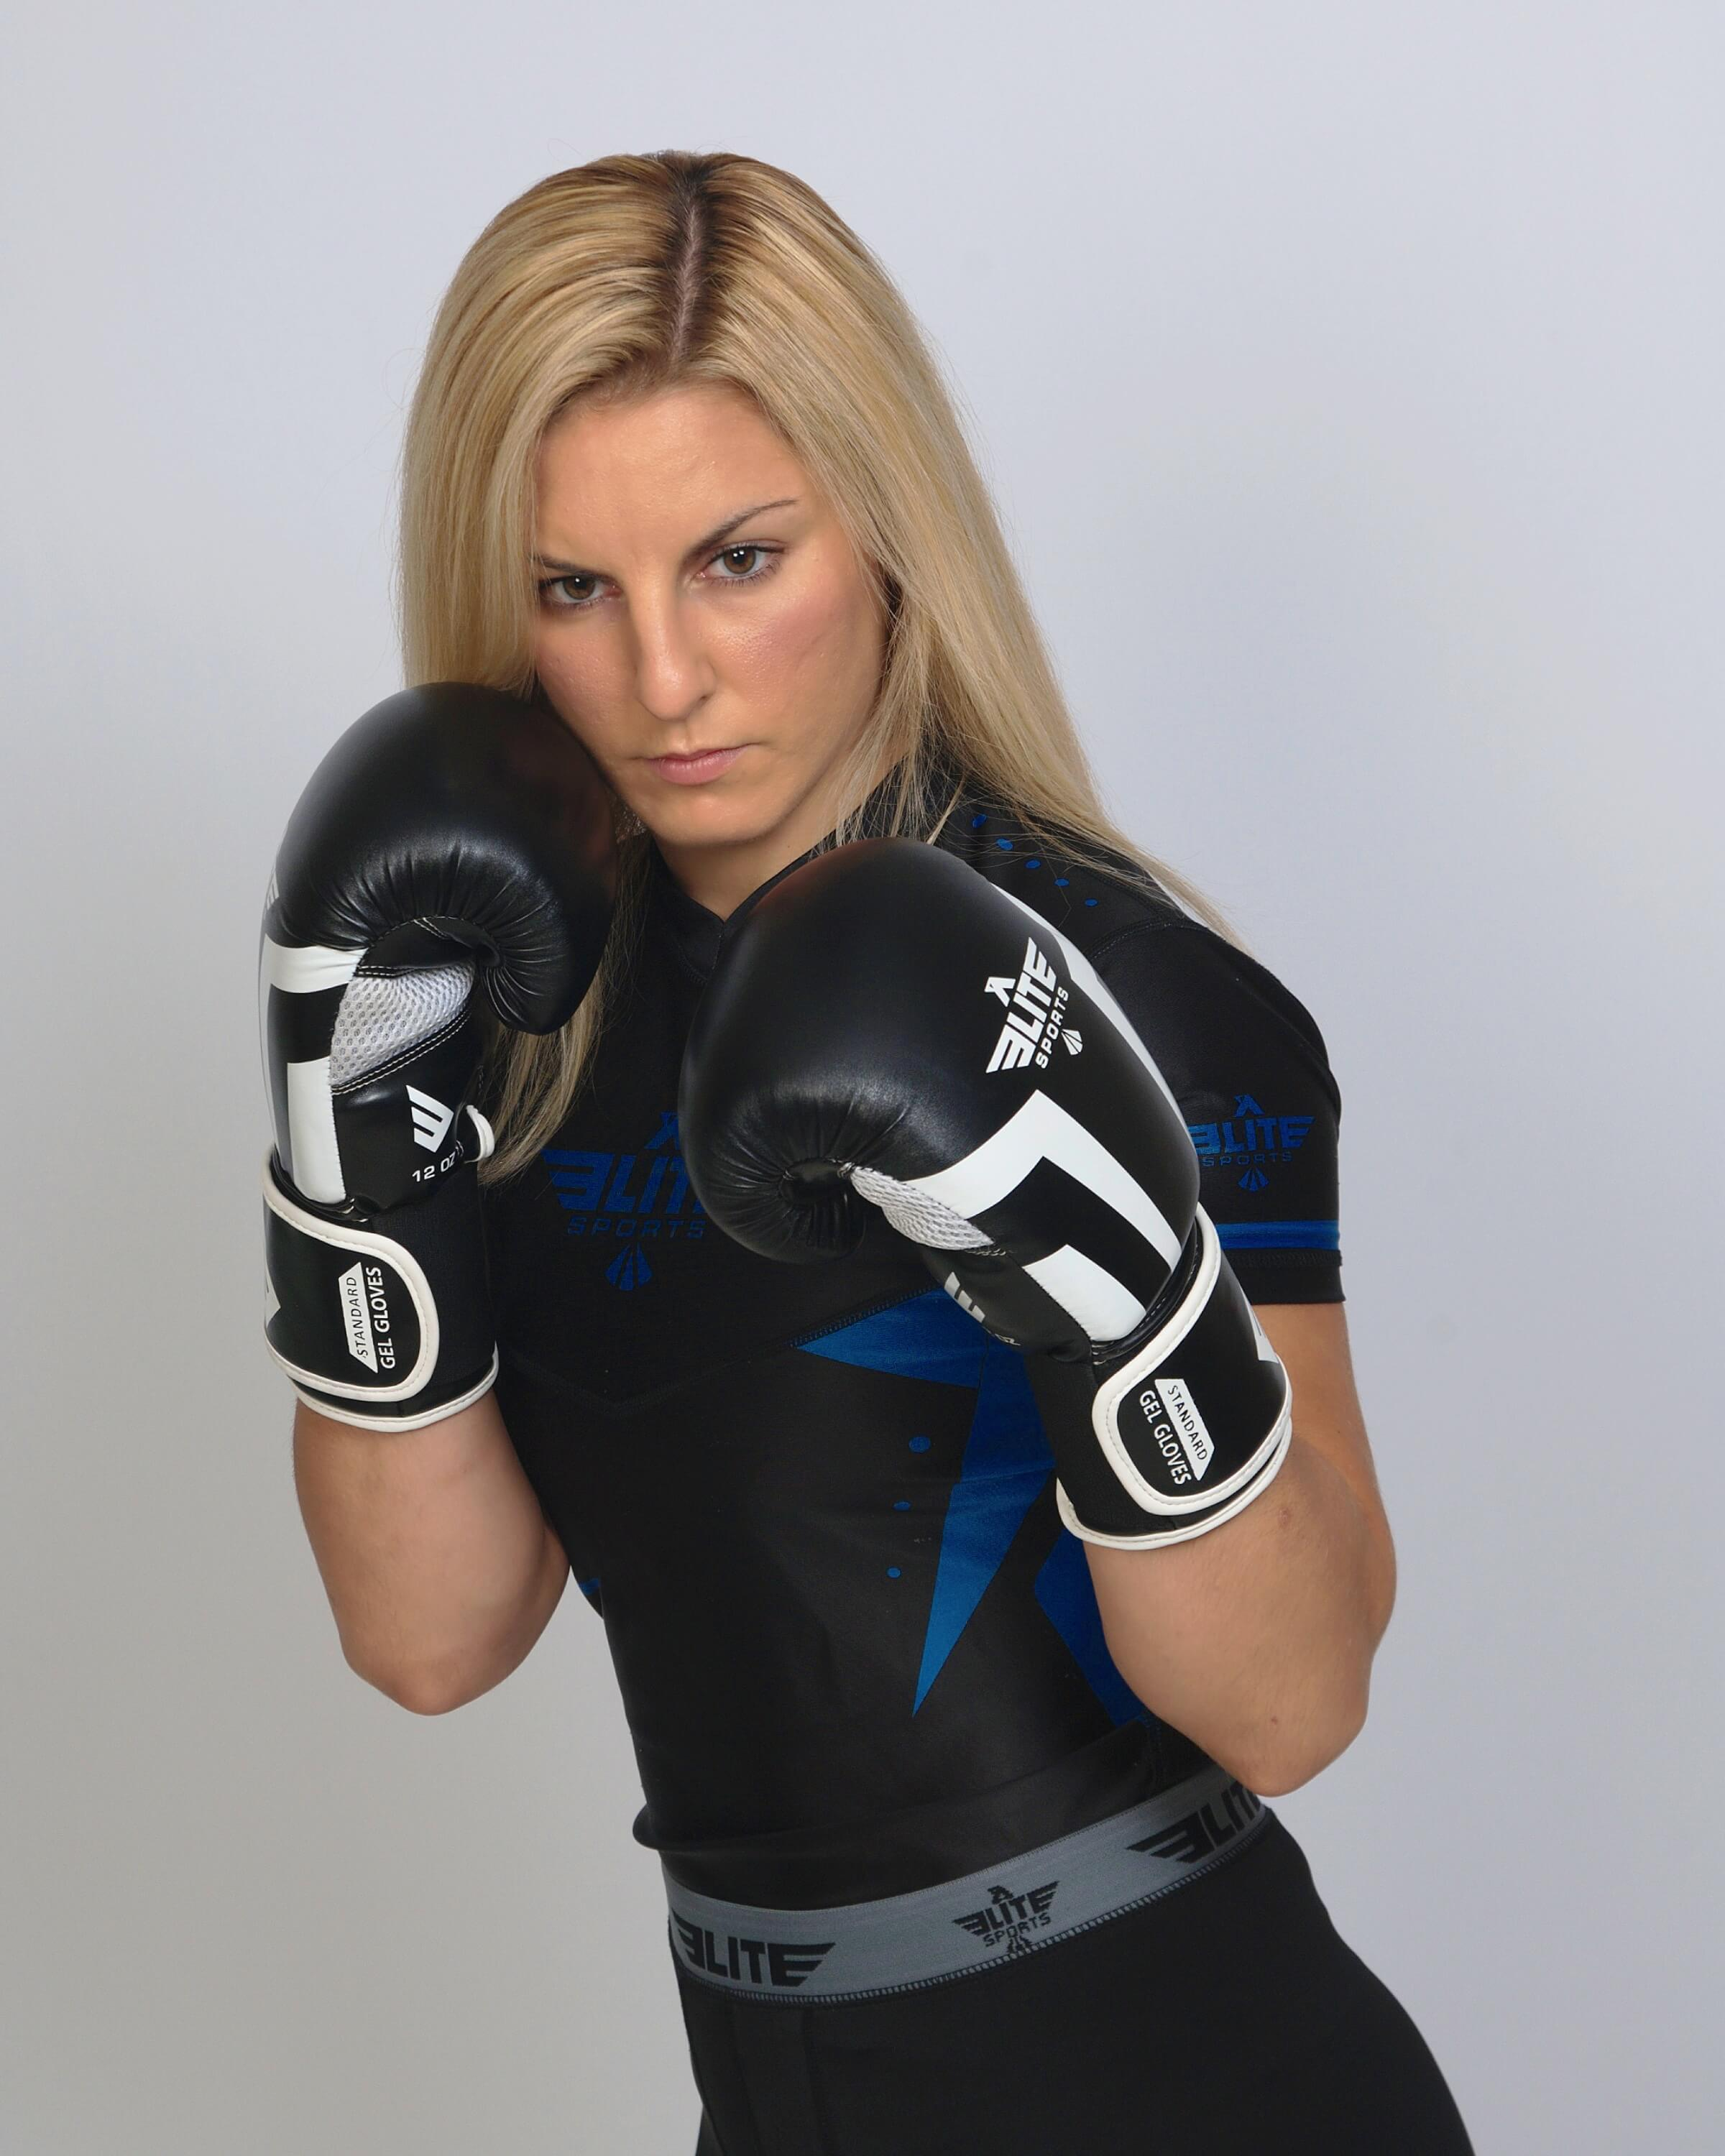 Elite sports Team Elite MMA Trisha Cicero image4.jpeg